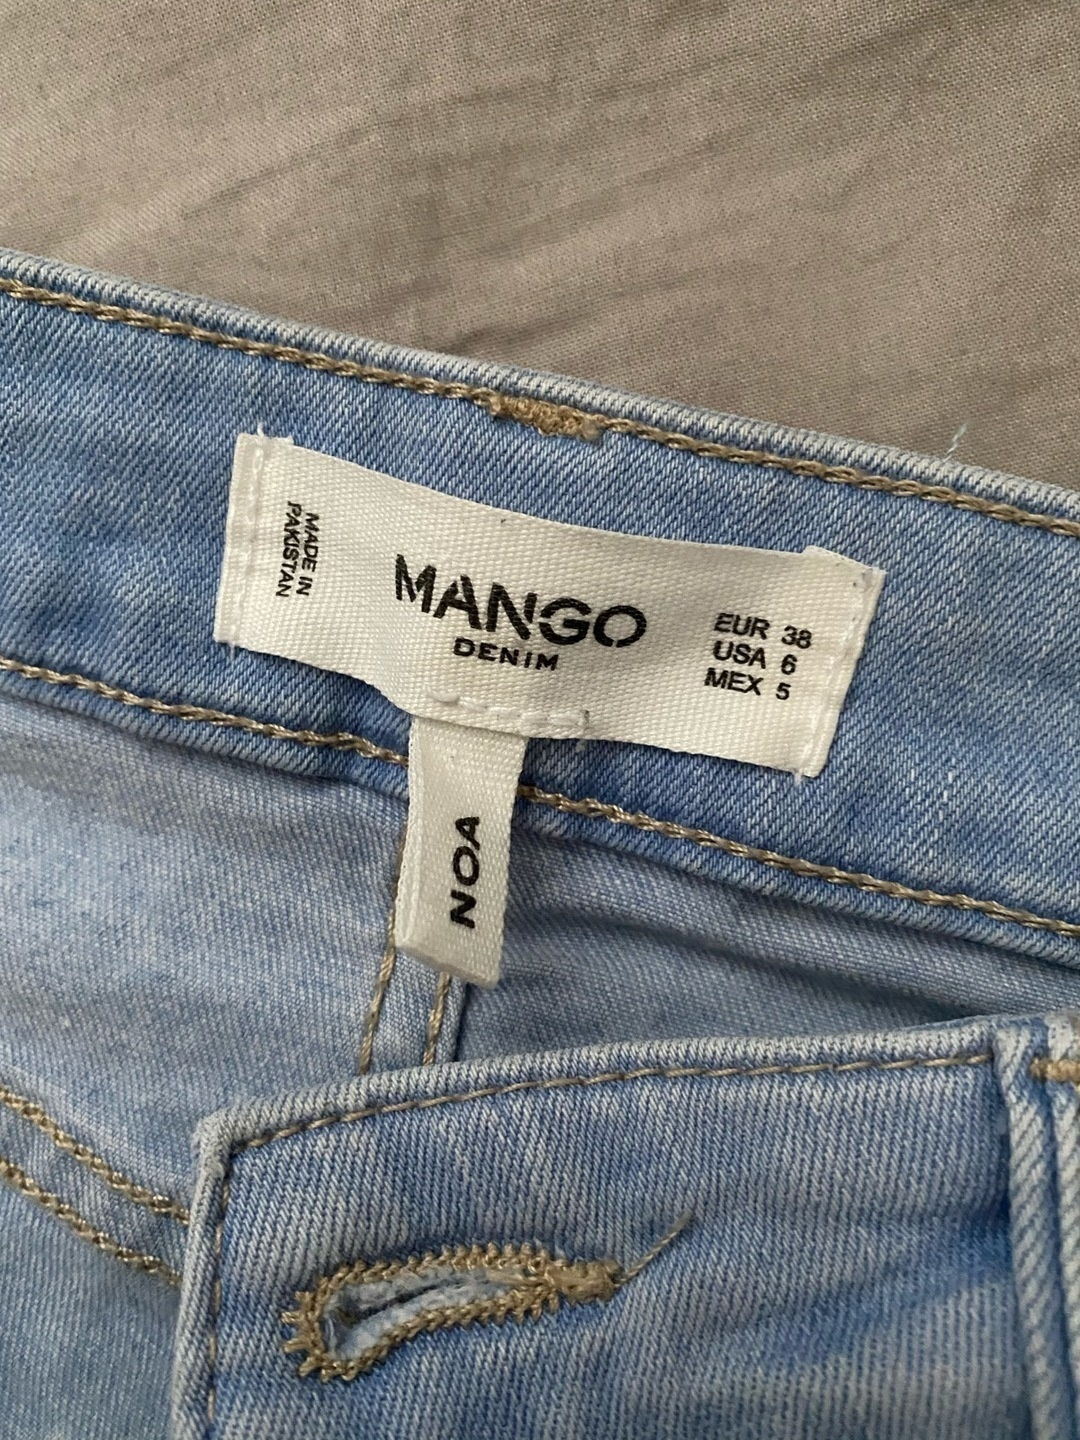 Damen hosen & jeans - MANGO photo 3